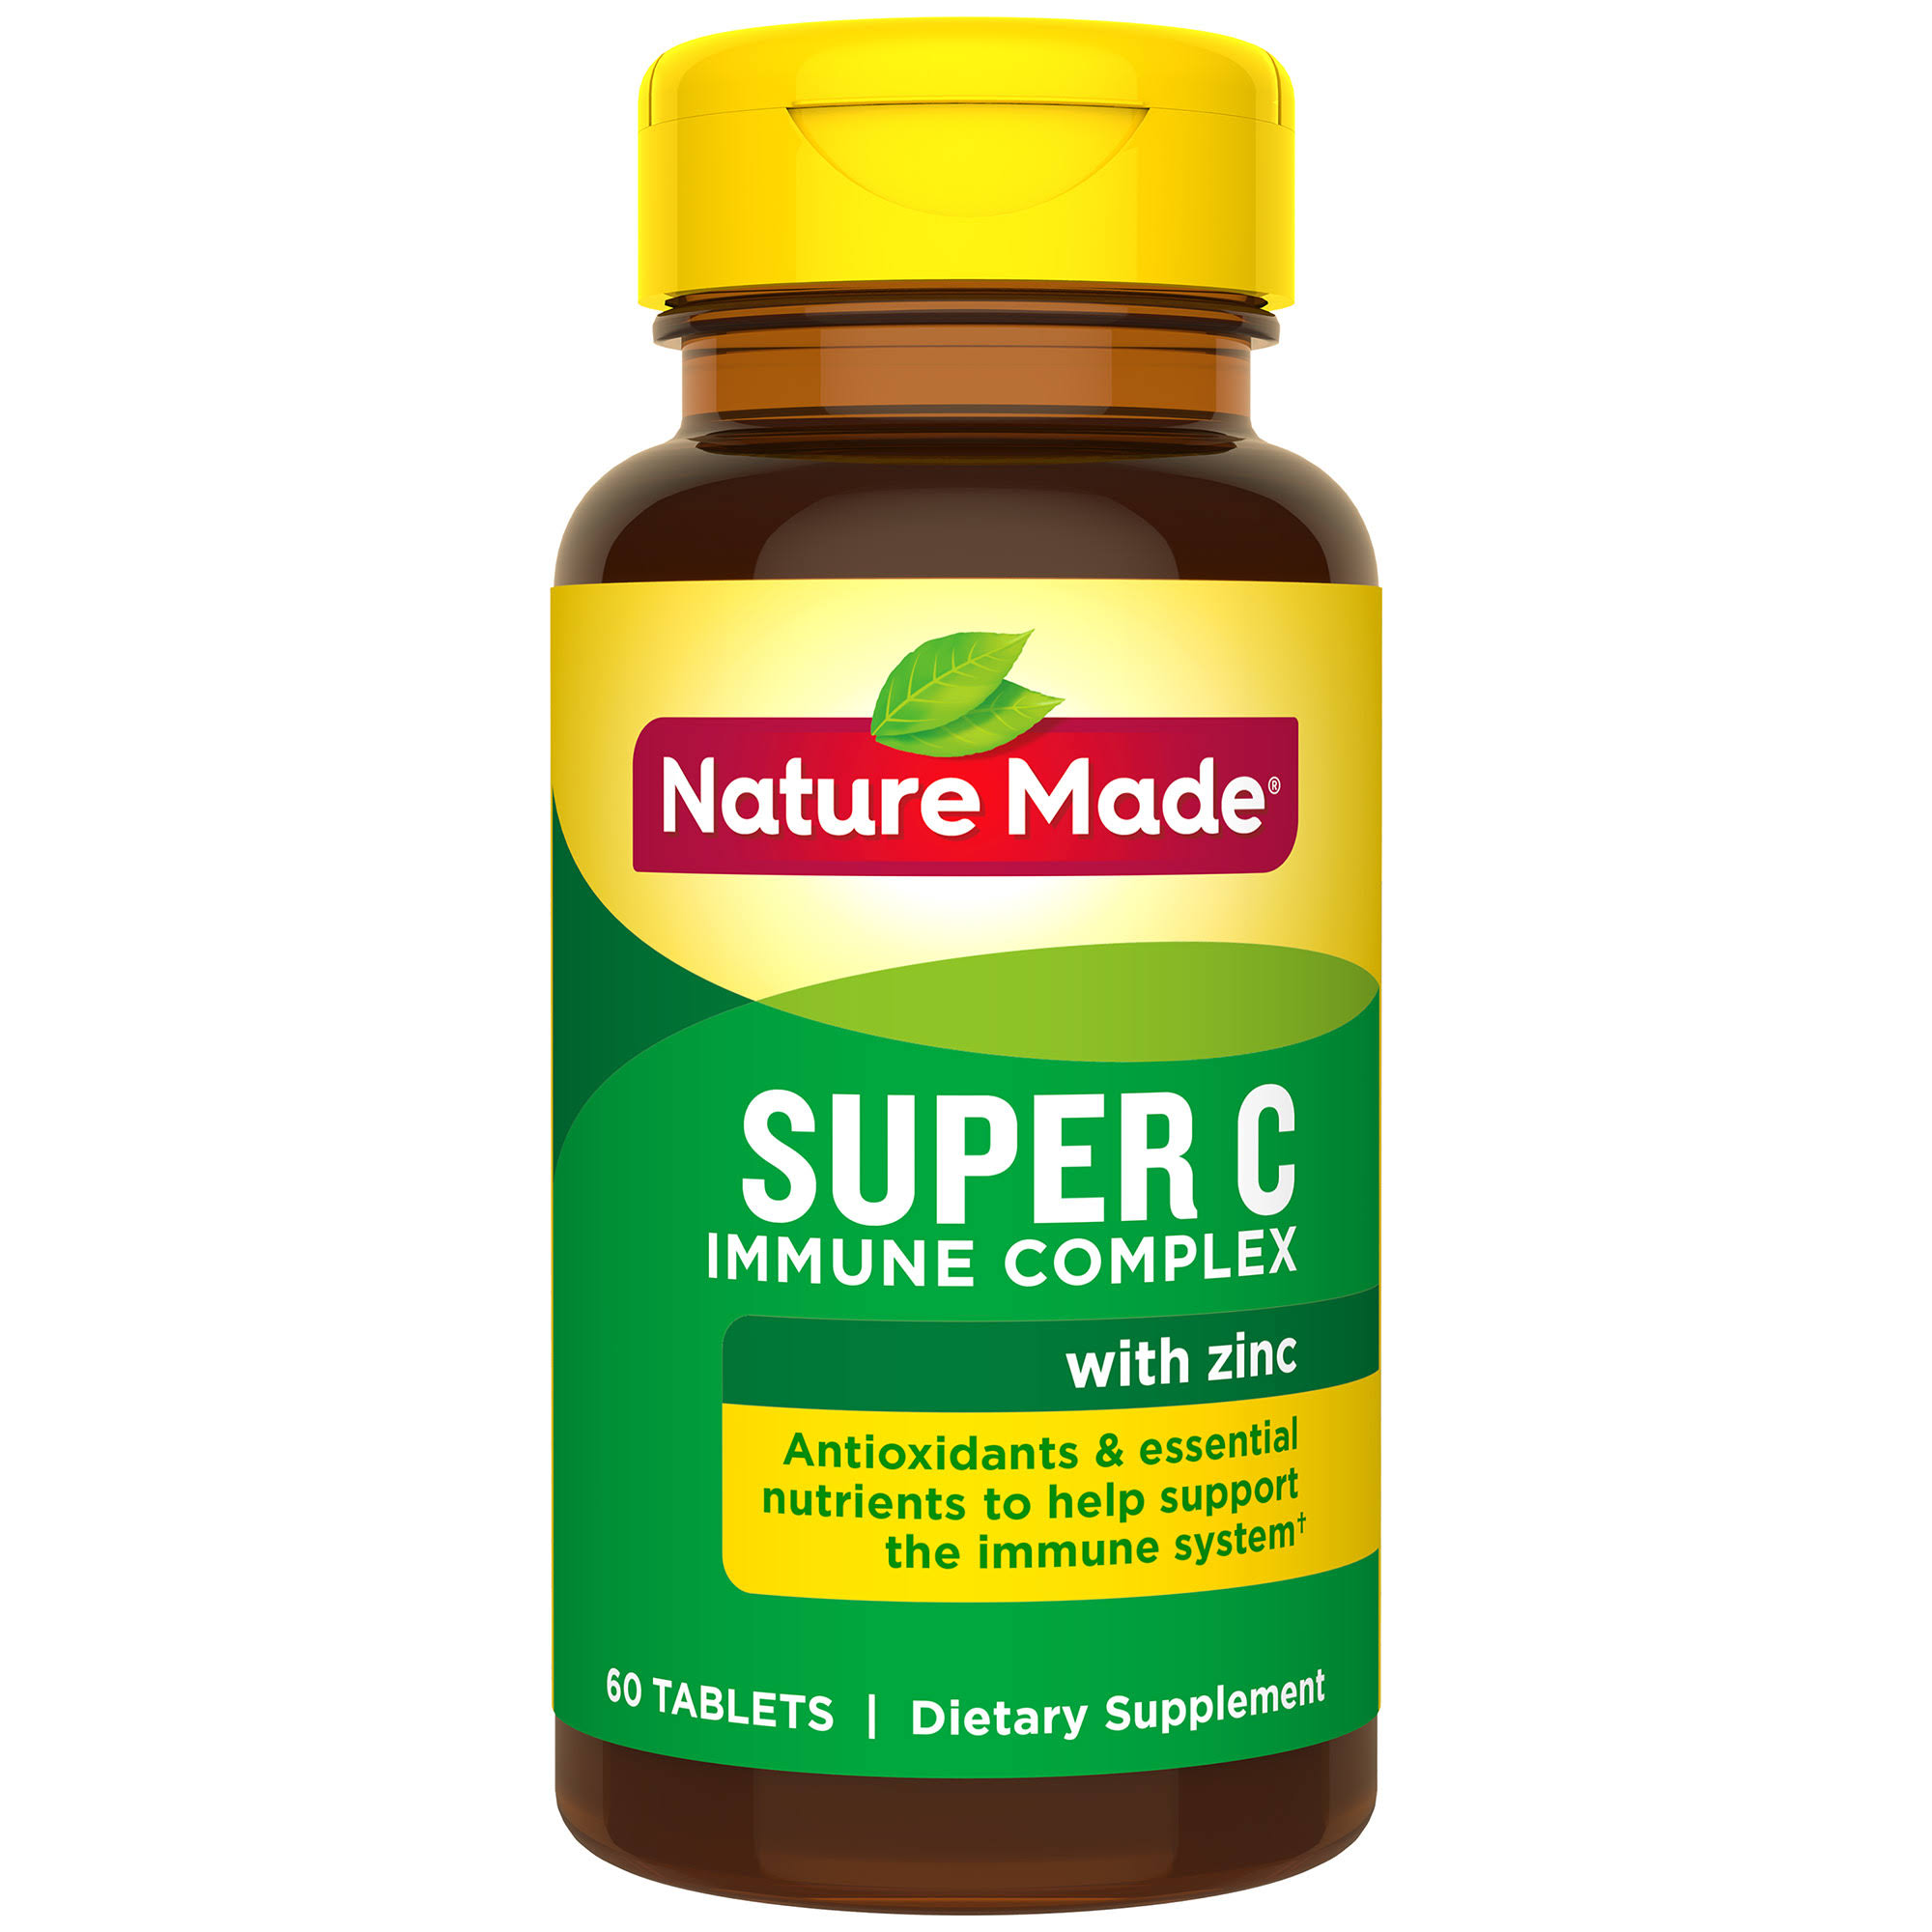 Nature Made Super C Immune Complex Supplement - 60 Tablets